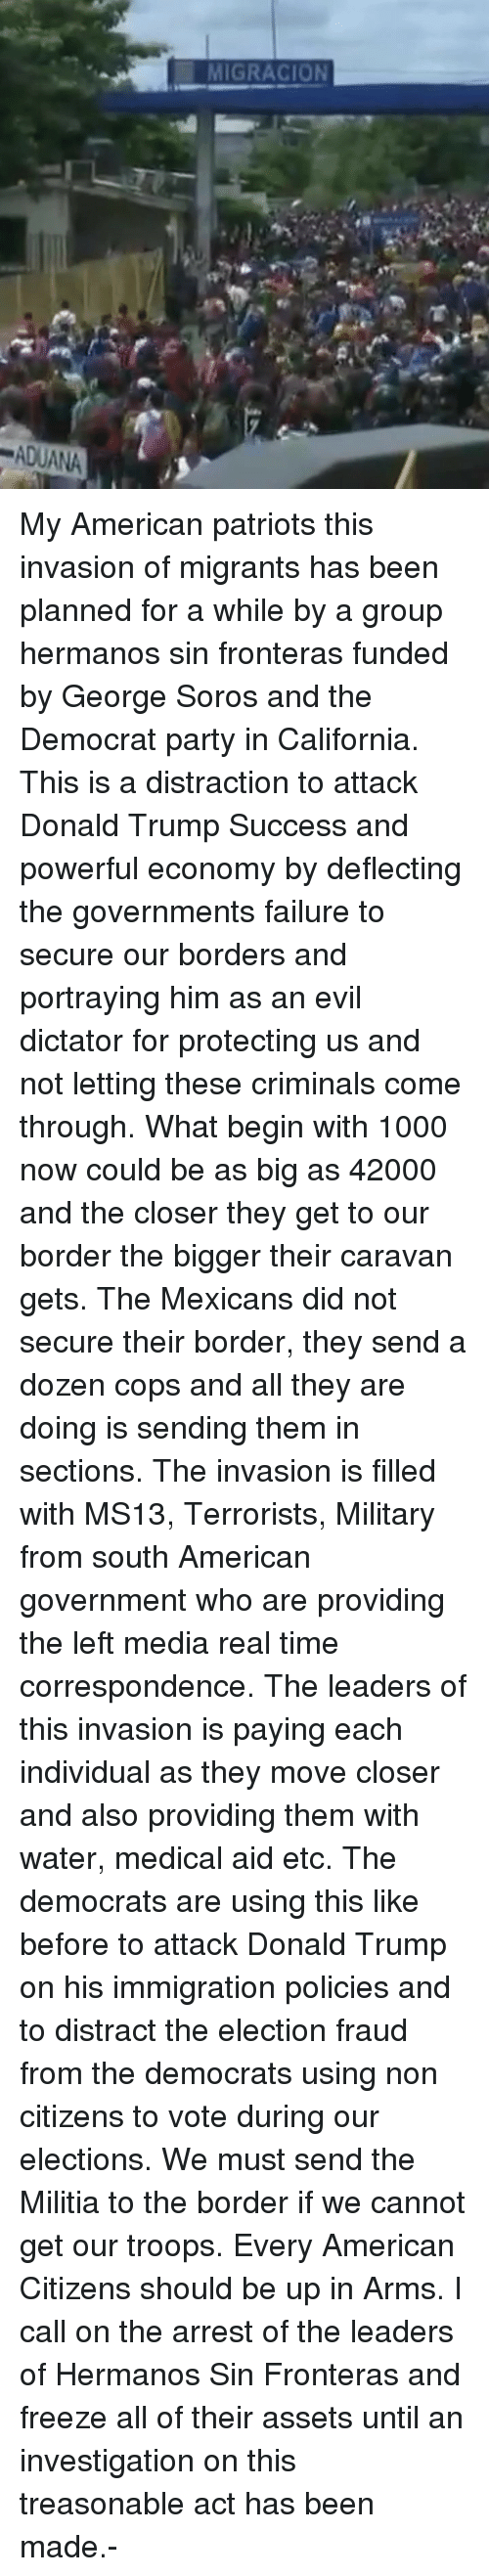 soros: MIGRACION  ADUANA My American patriots this invasion of migrants has been planned for a while by a group hermanos sin fronteras funded by George Soros and the Democrat party in California. This is a distraction to attack Donald Trump Success and powerful economy by deflecting the governments failure to secure our borders and portraying him as an evil dictator for protecting us and not letting these criminals come through. What begin with 1000 now could be as big as 42000 and the closer they get to our border the bigger their caravan gets. The Mexicans did not secure their border, they send a dozen cops and all they are doing is sending them in sections. The invasion is filled with MS13, Terrorists, Military from south American government who are providing the left media real time correspondence. The leaders of this invasion is paying each individual as they move closer and also providing them with water, medical aid etc. The democrats are using this like before to attack Donald Trump on his immigration policies and to distract the election fraud from the democrats using non citizens to vote during our elections. We must send the Militia to the border if we cannot get our troops. Every American Citizens should be up in Arms. I call on the arrest of the leaders of Hermanos Sin Fronteras and freeze all of their assets until an investigation on this treasonable act has been made.-